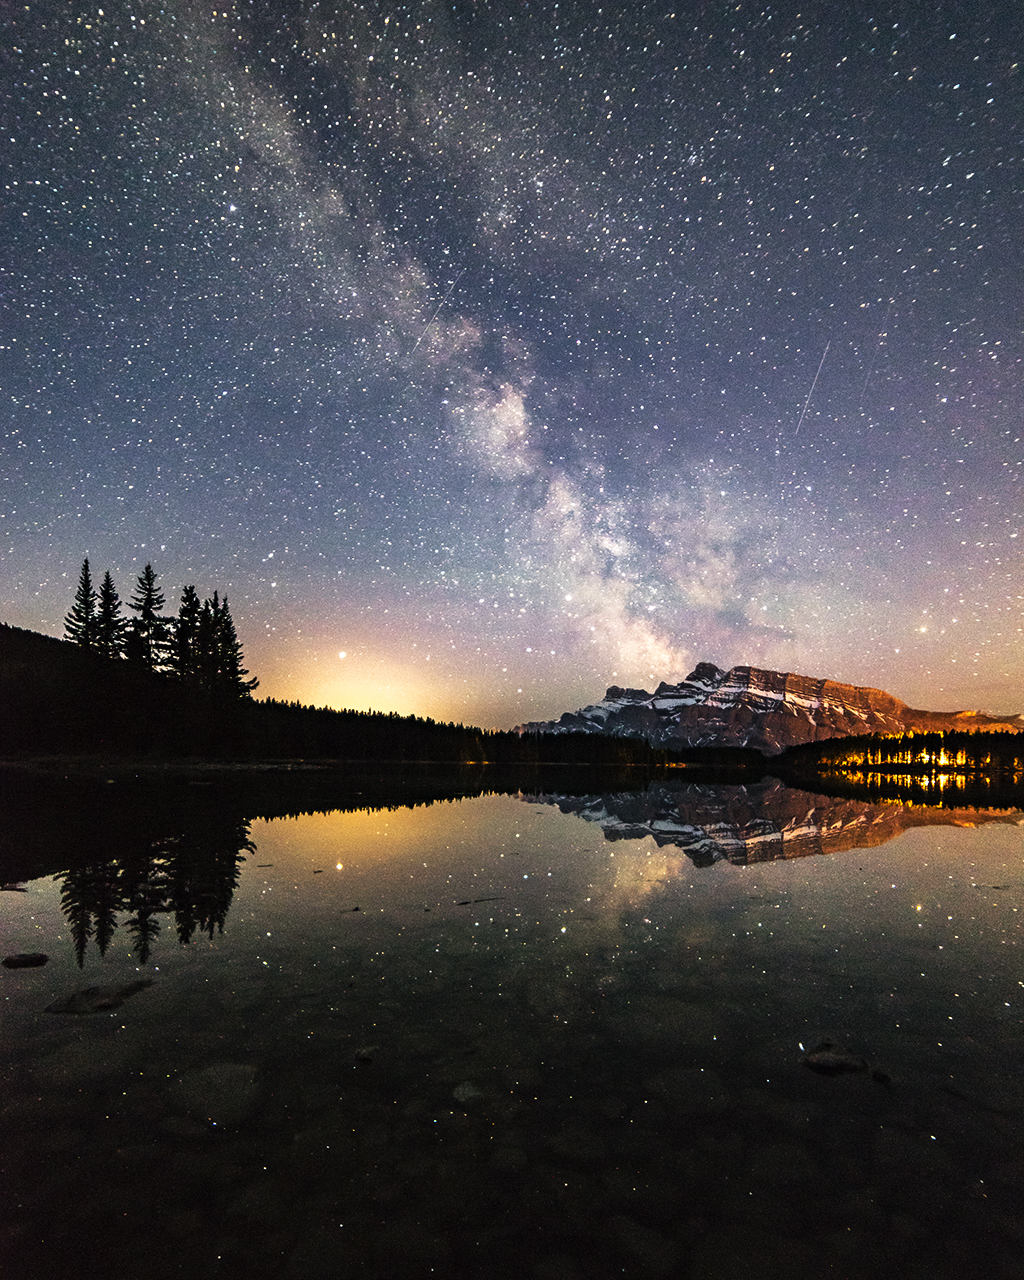 Capturing the Milky Way - The night sky is one of the most incredible things about this world. When your friends are sleeping I will teach you how to best capture the night sky, from the Milky Way to Aurora Borealis and everything in between!